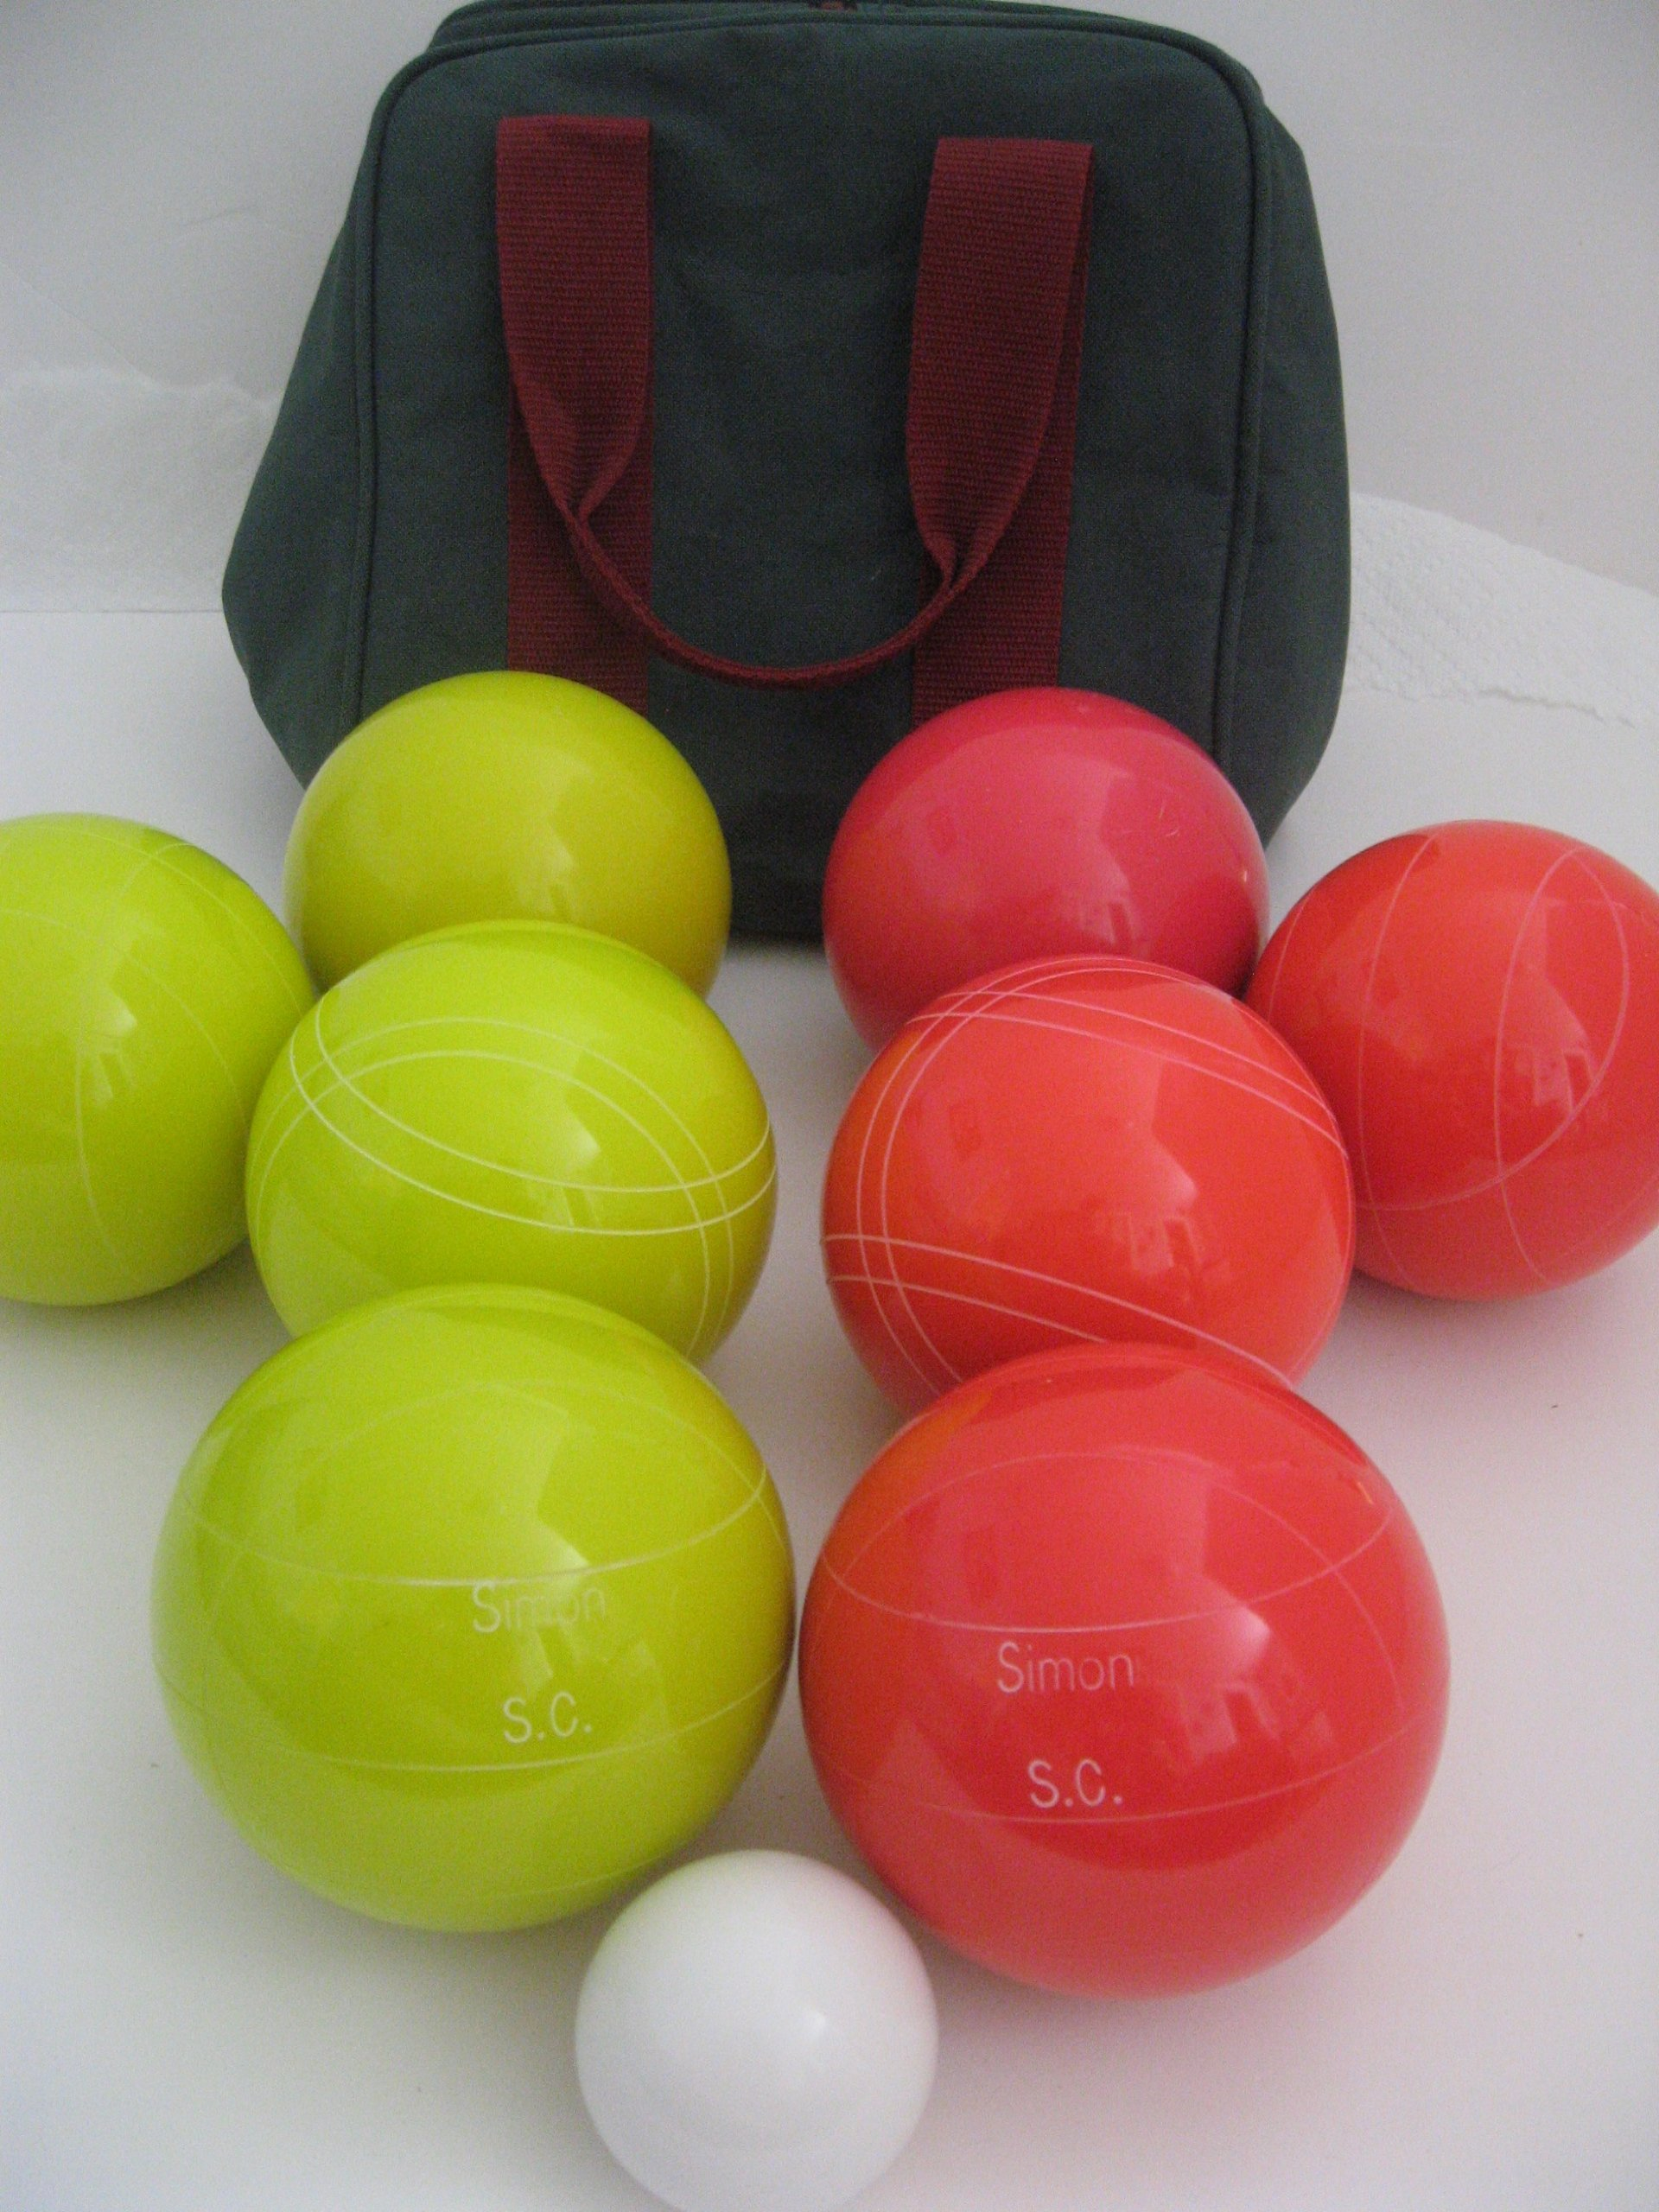 Premium Quality Engraved Bocce Package - 110mm Epco Yellow and Light Red Balls with Engraving by Epco